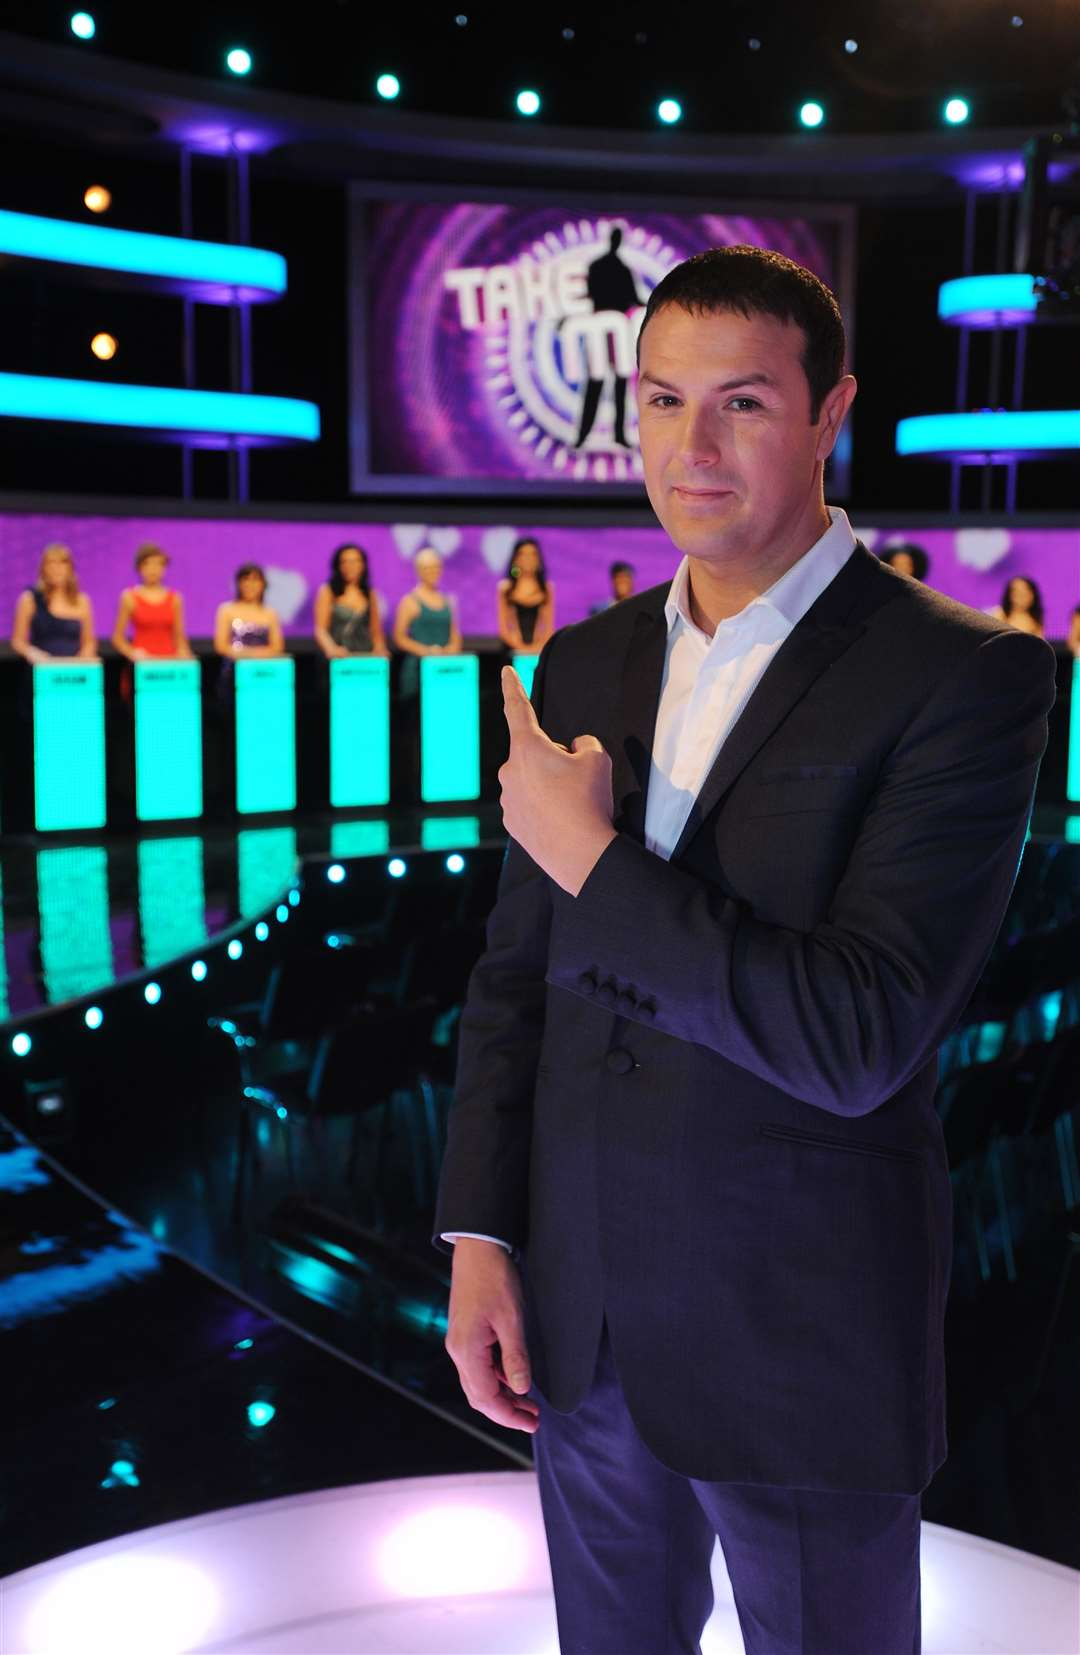 Paddy McGuinness, presenter of Take Me Out, filmed at Maidstone Studios. Credit: Talkback Thames